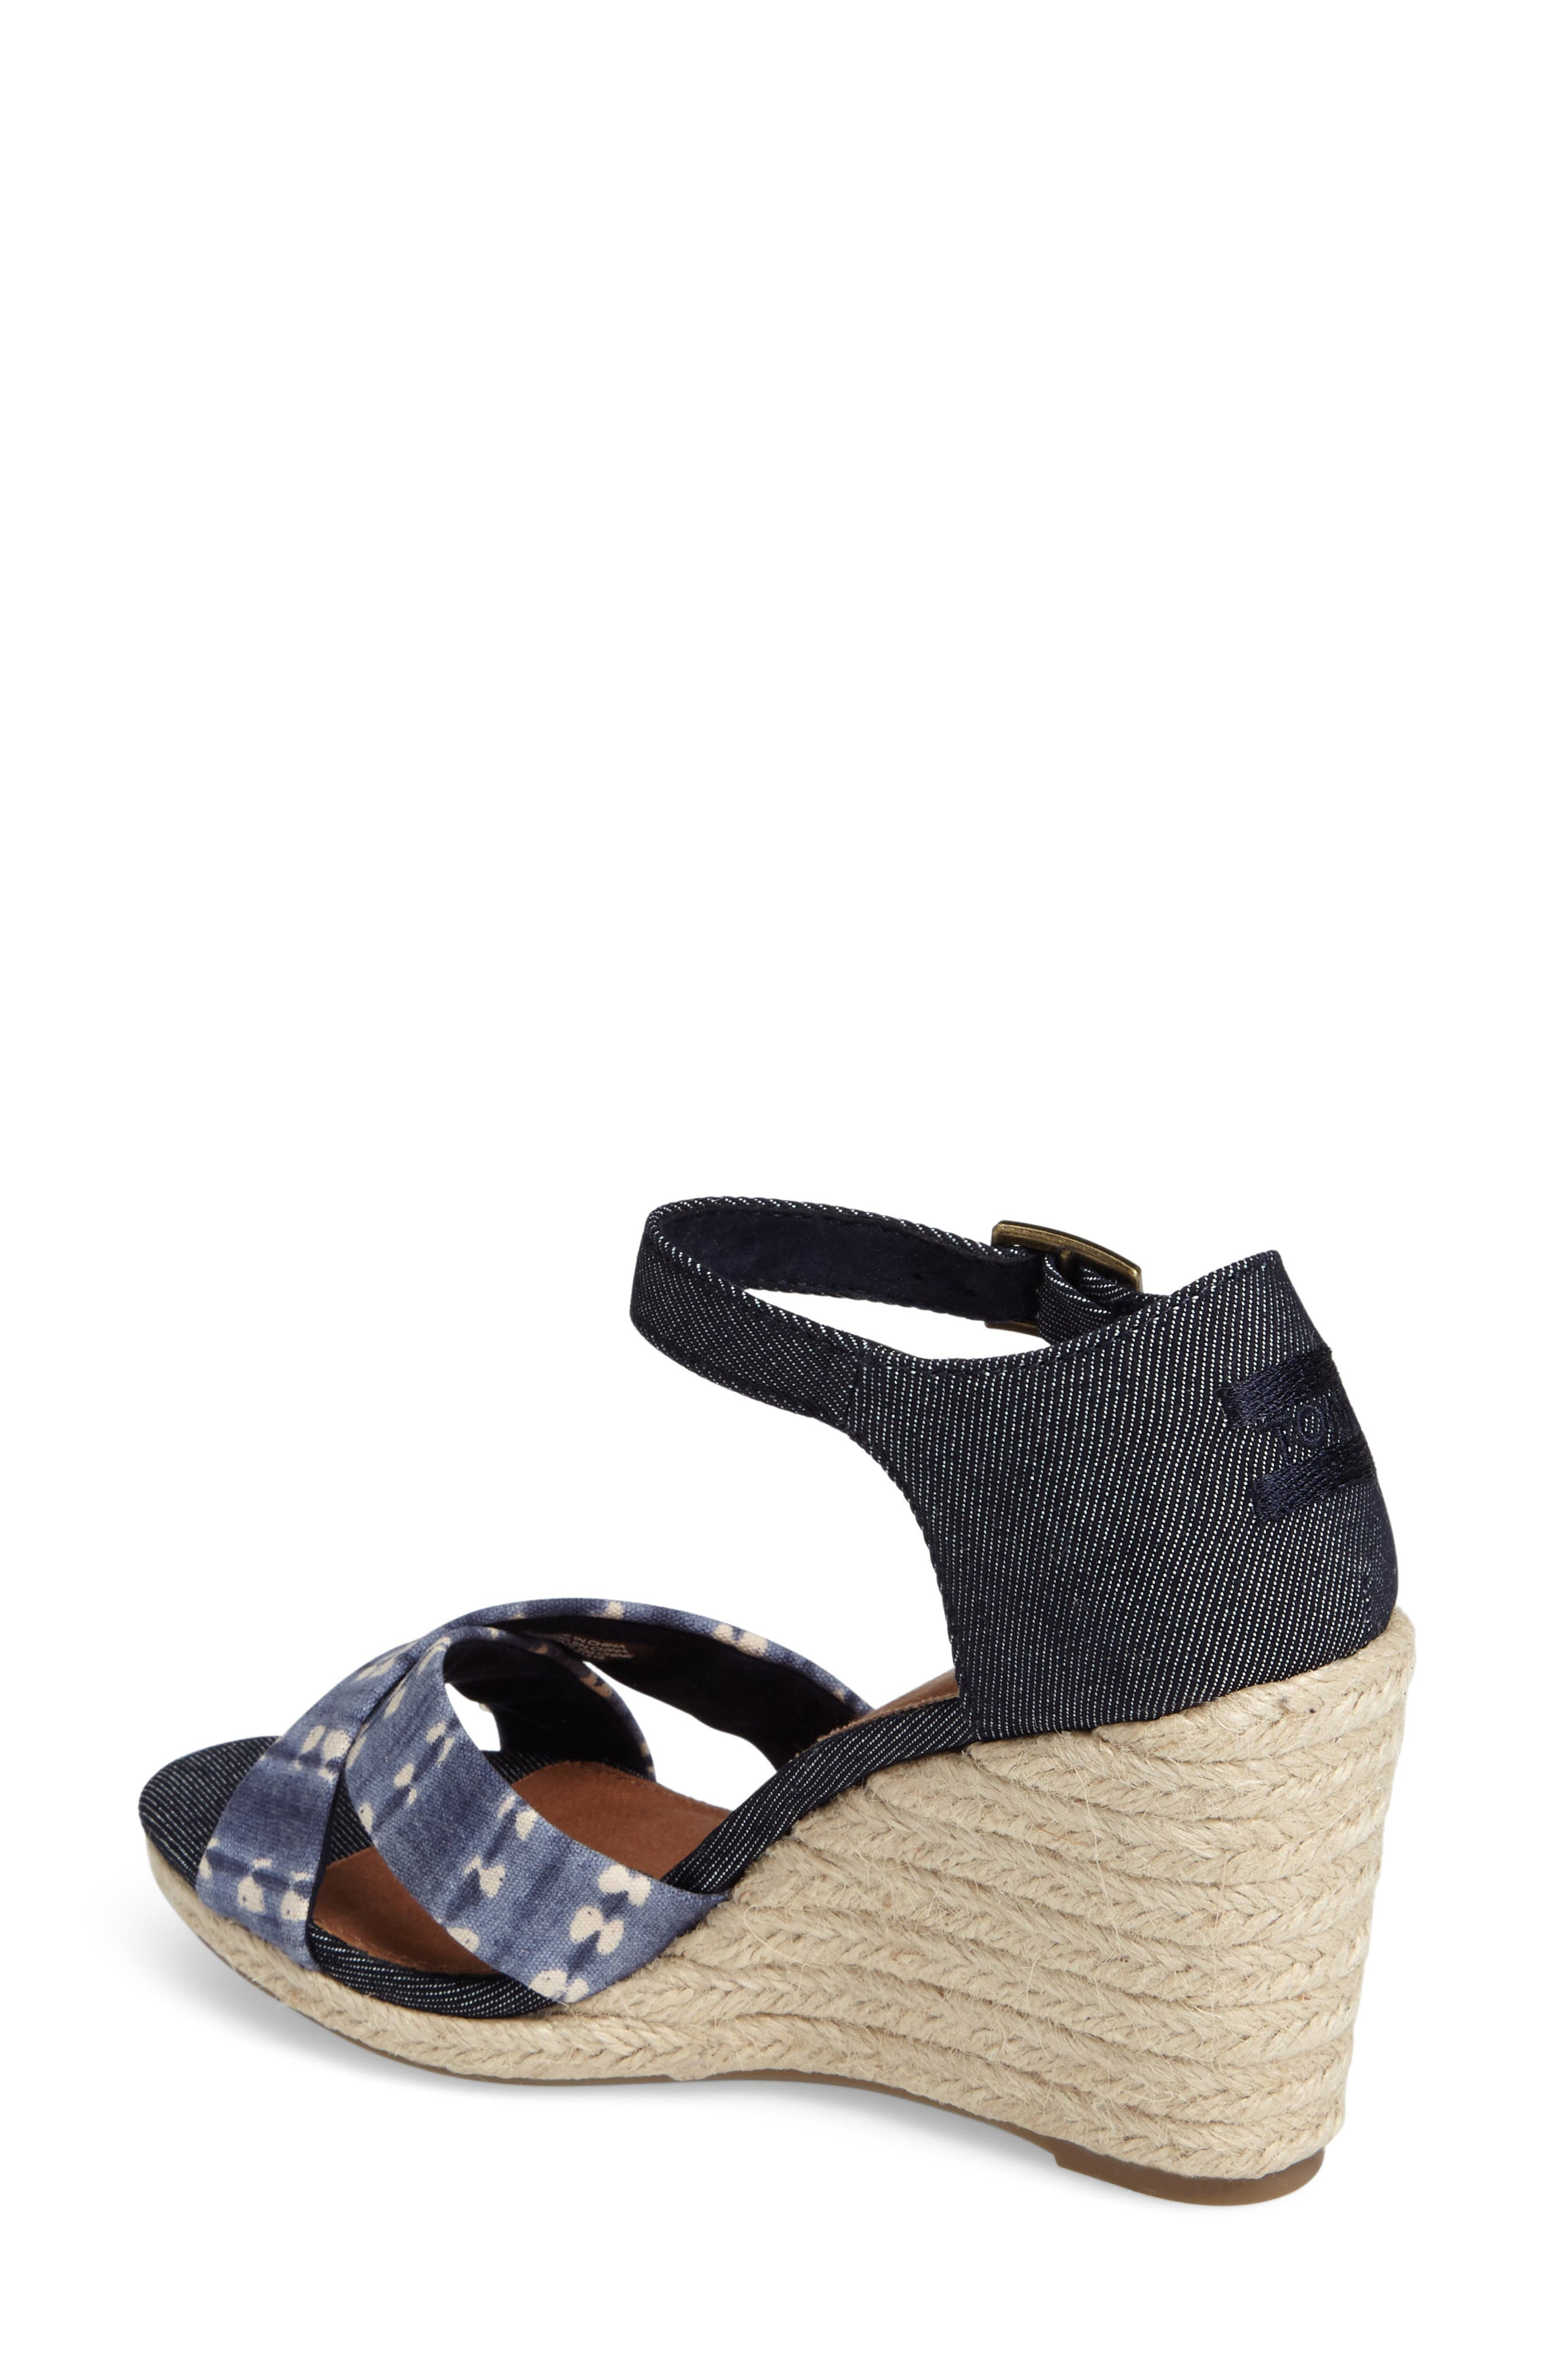 Alternate Image 2  - TOMS Sienna Wedge Sandal (Women)